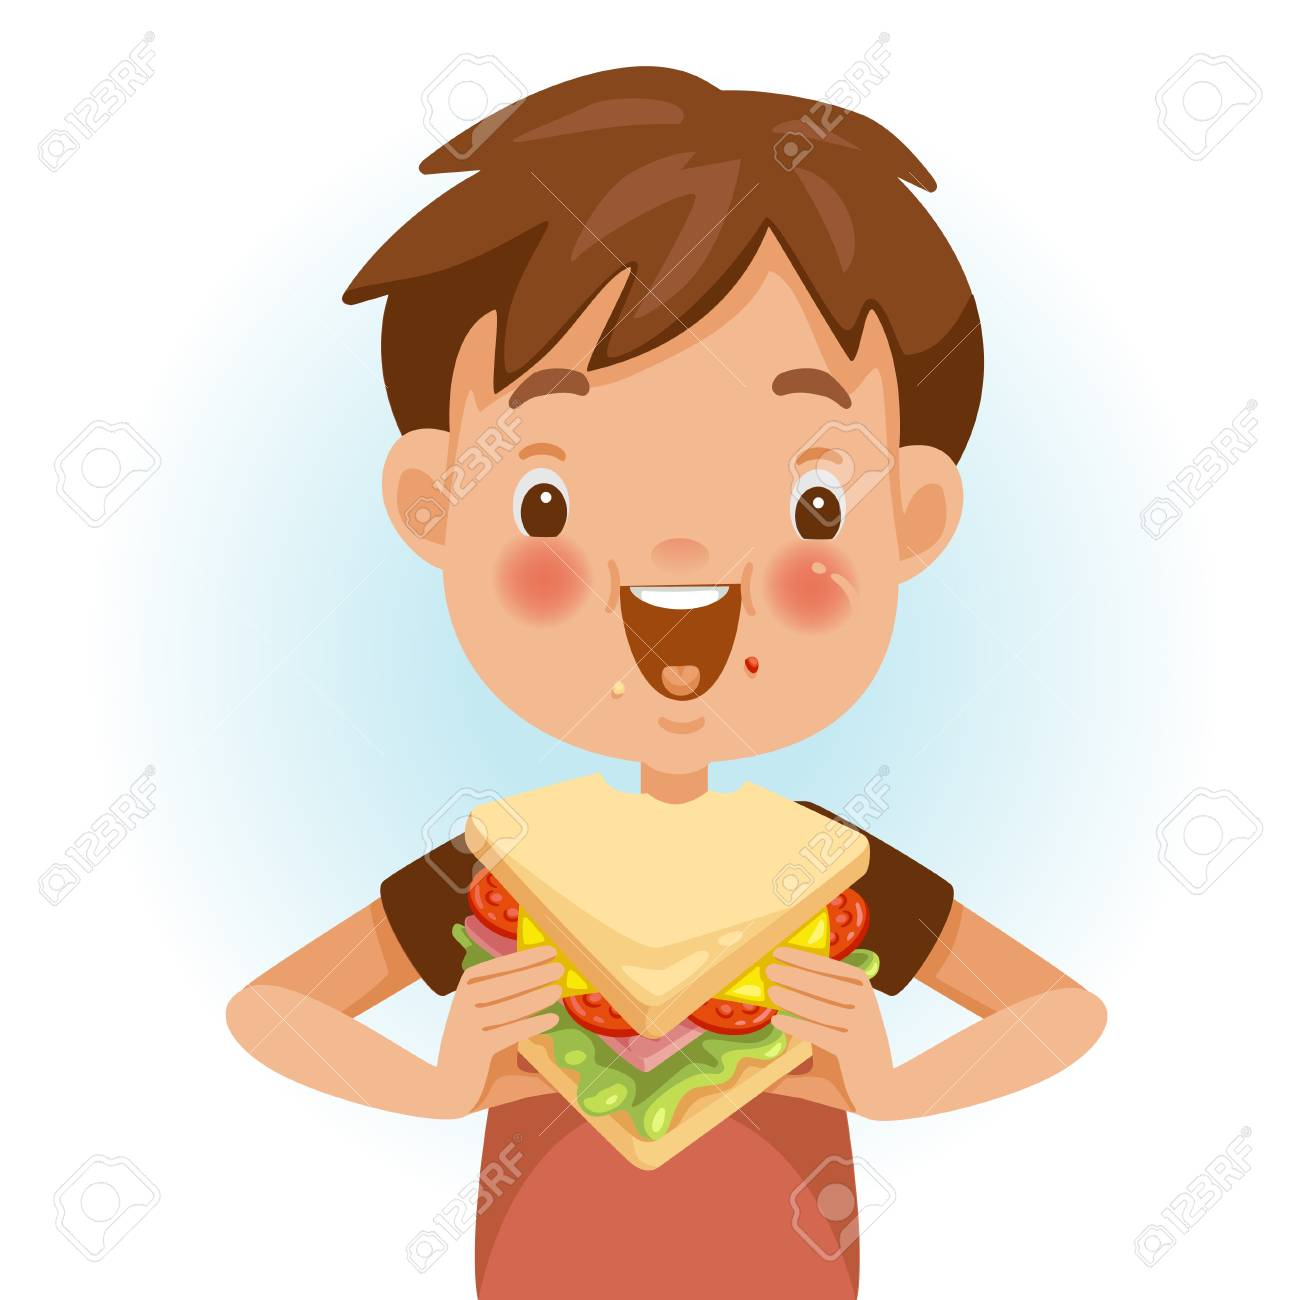 Boy eating sandwich. Emotional mood on the child's face feels good. Delicious and very happy. Good sandwich bites. Cute cartoon in red shirt - 105746776